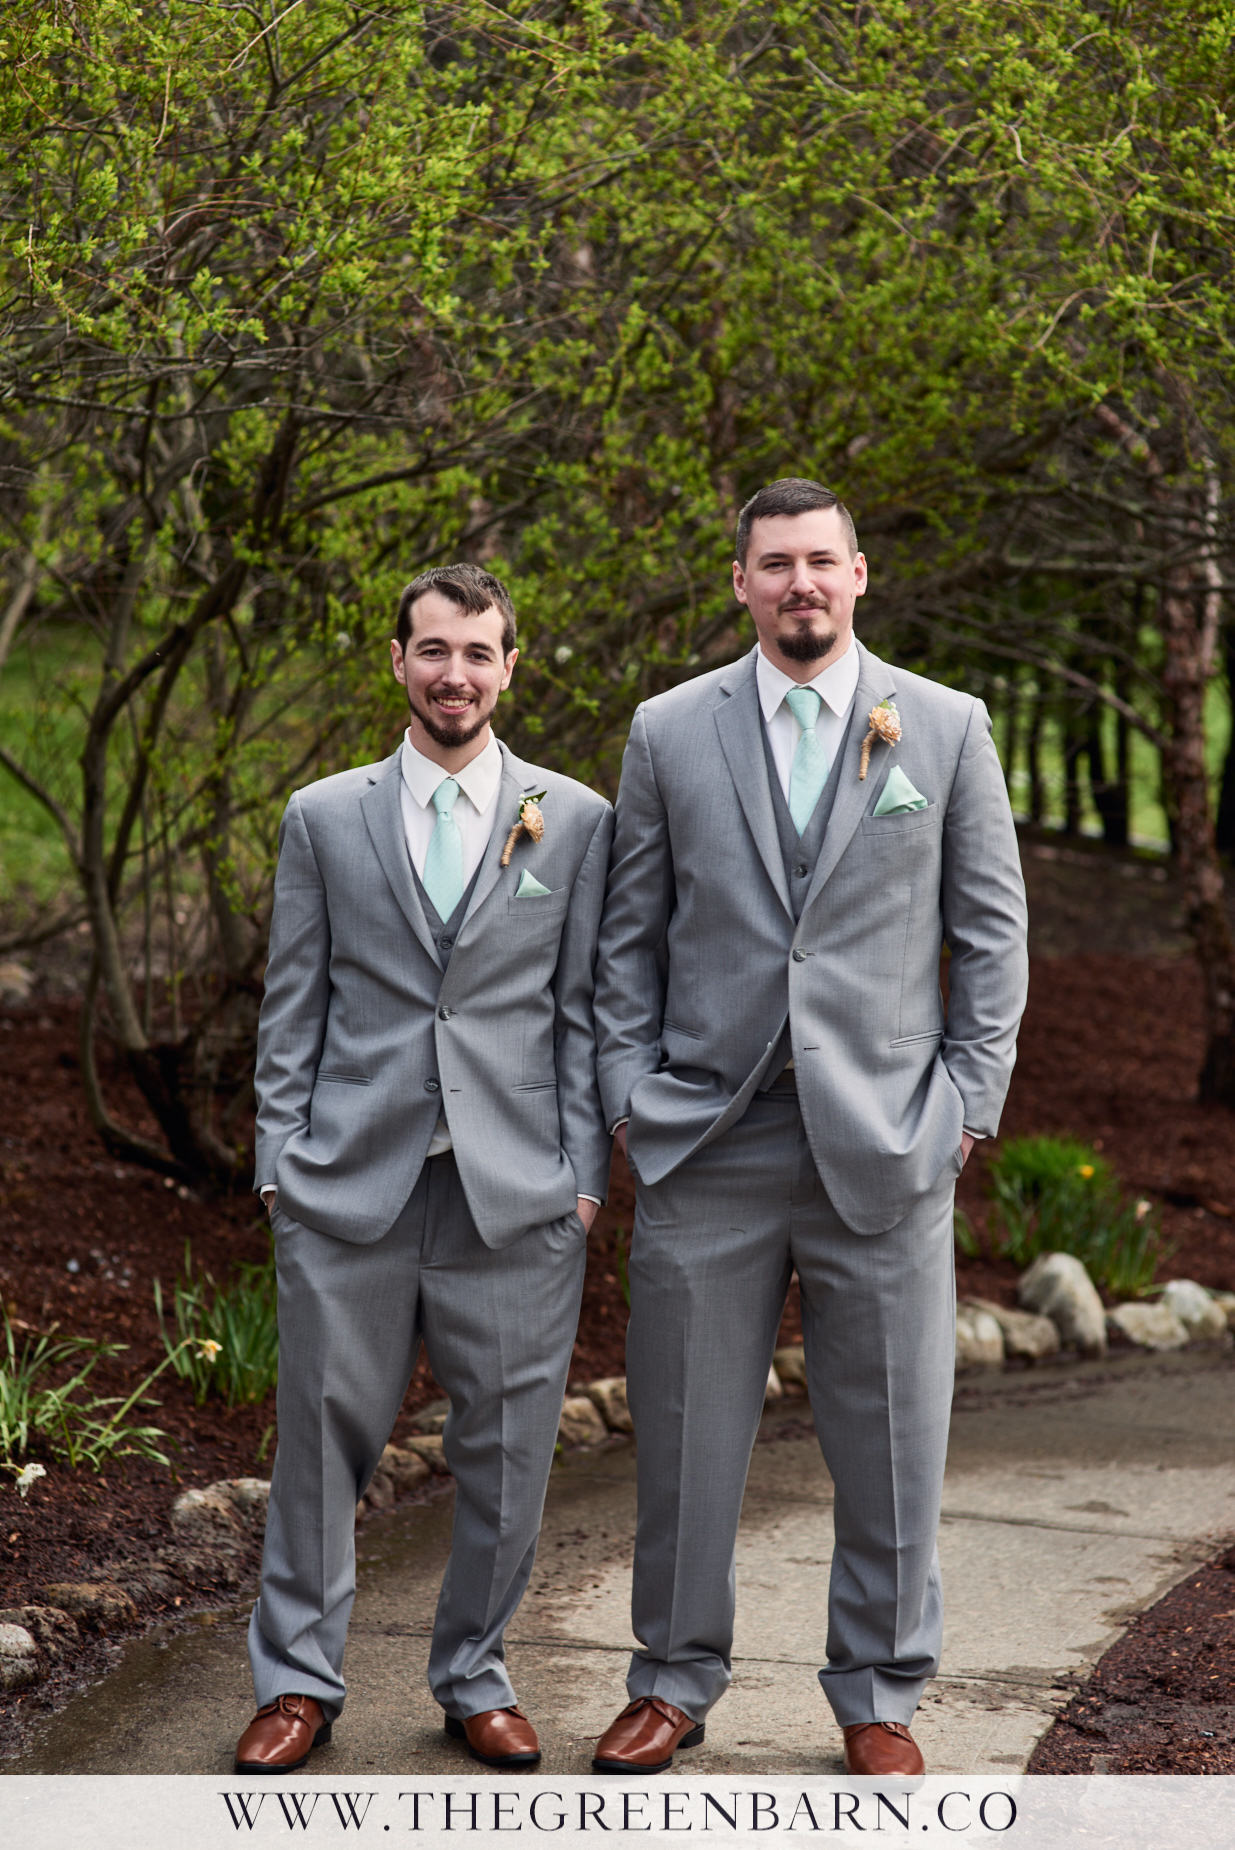 Groom in Grey Suit with Sea Foam Green Tie and Pocket Square Photo with Groomsman